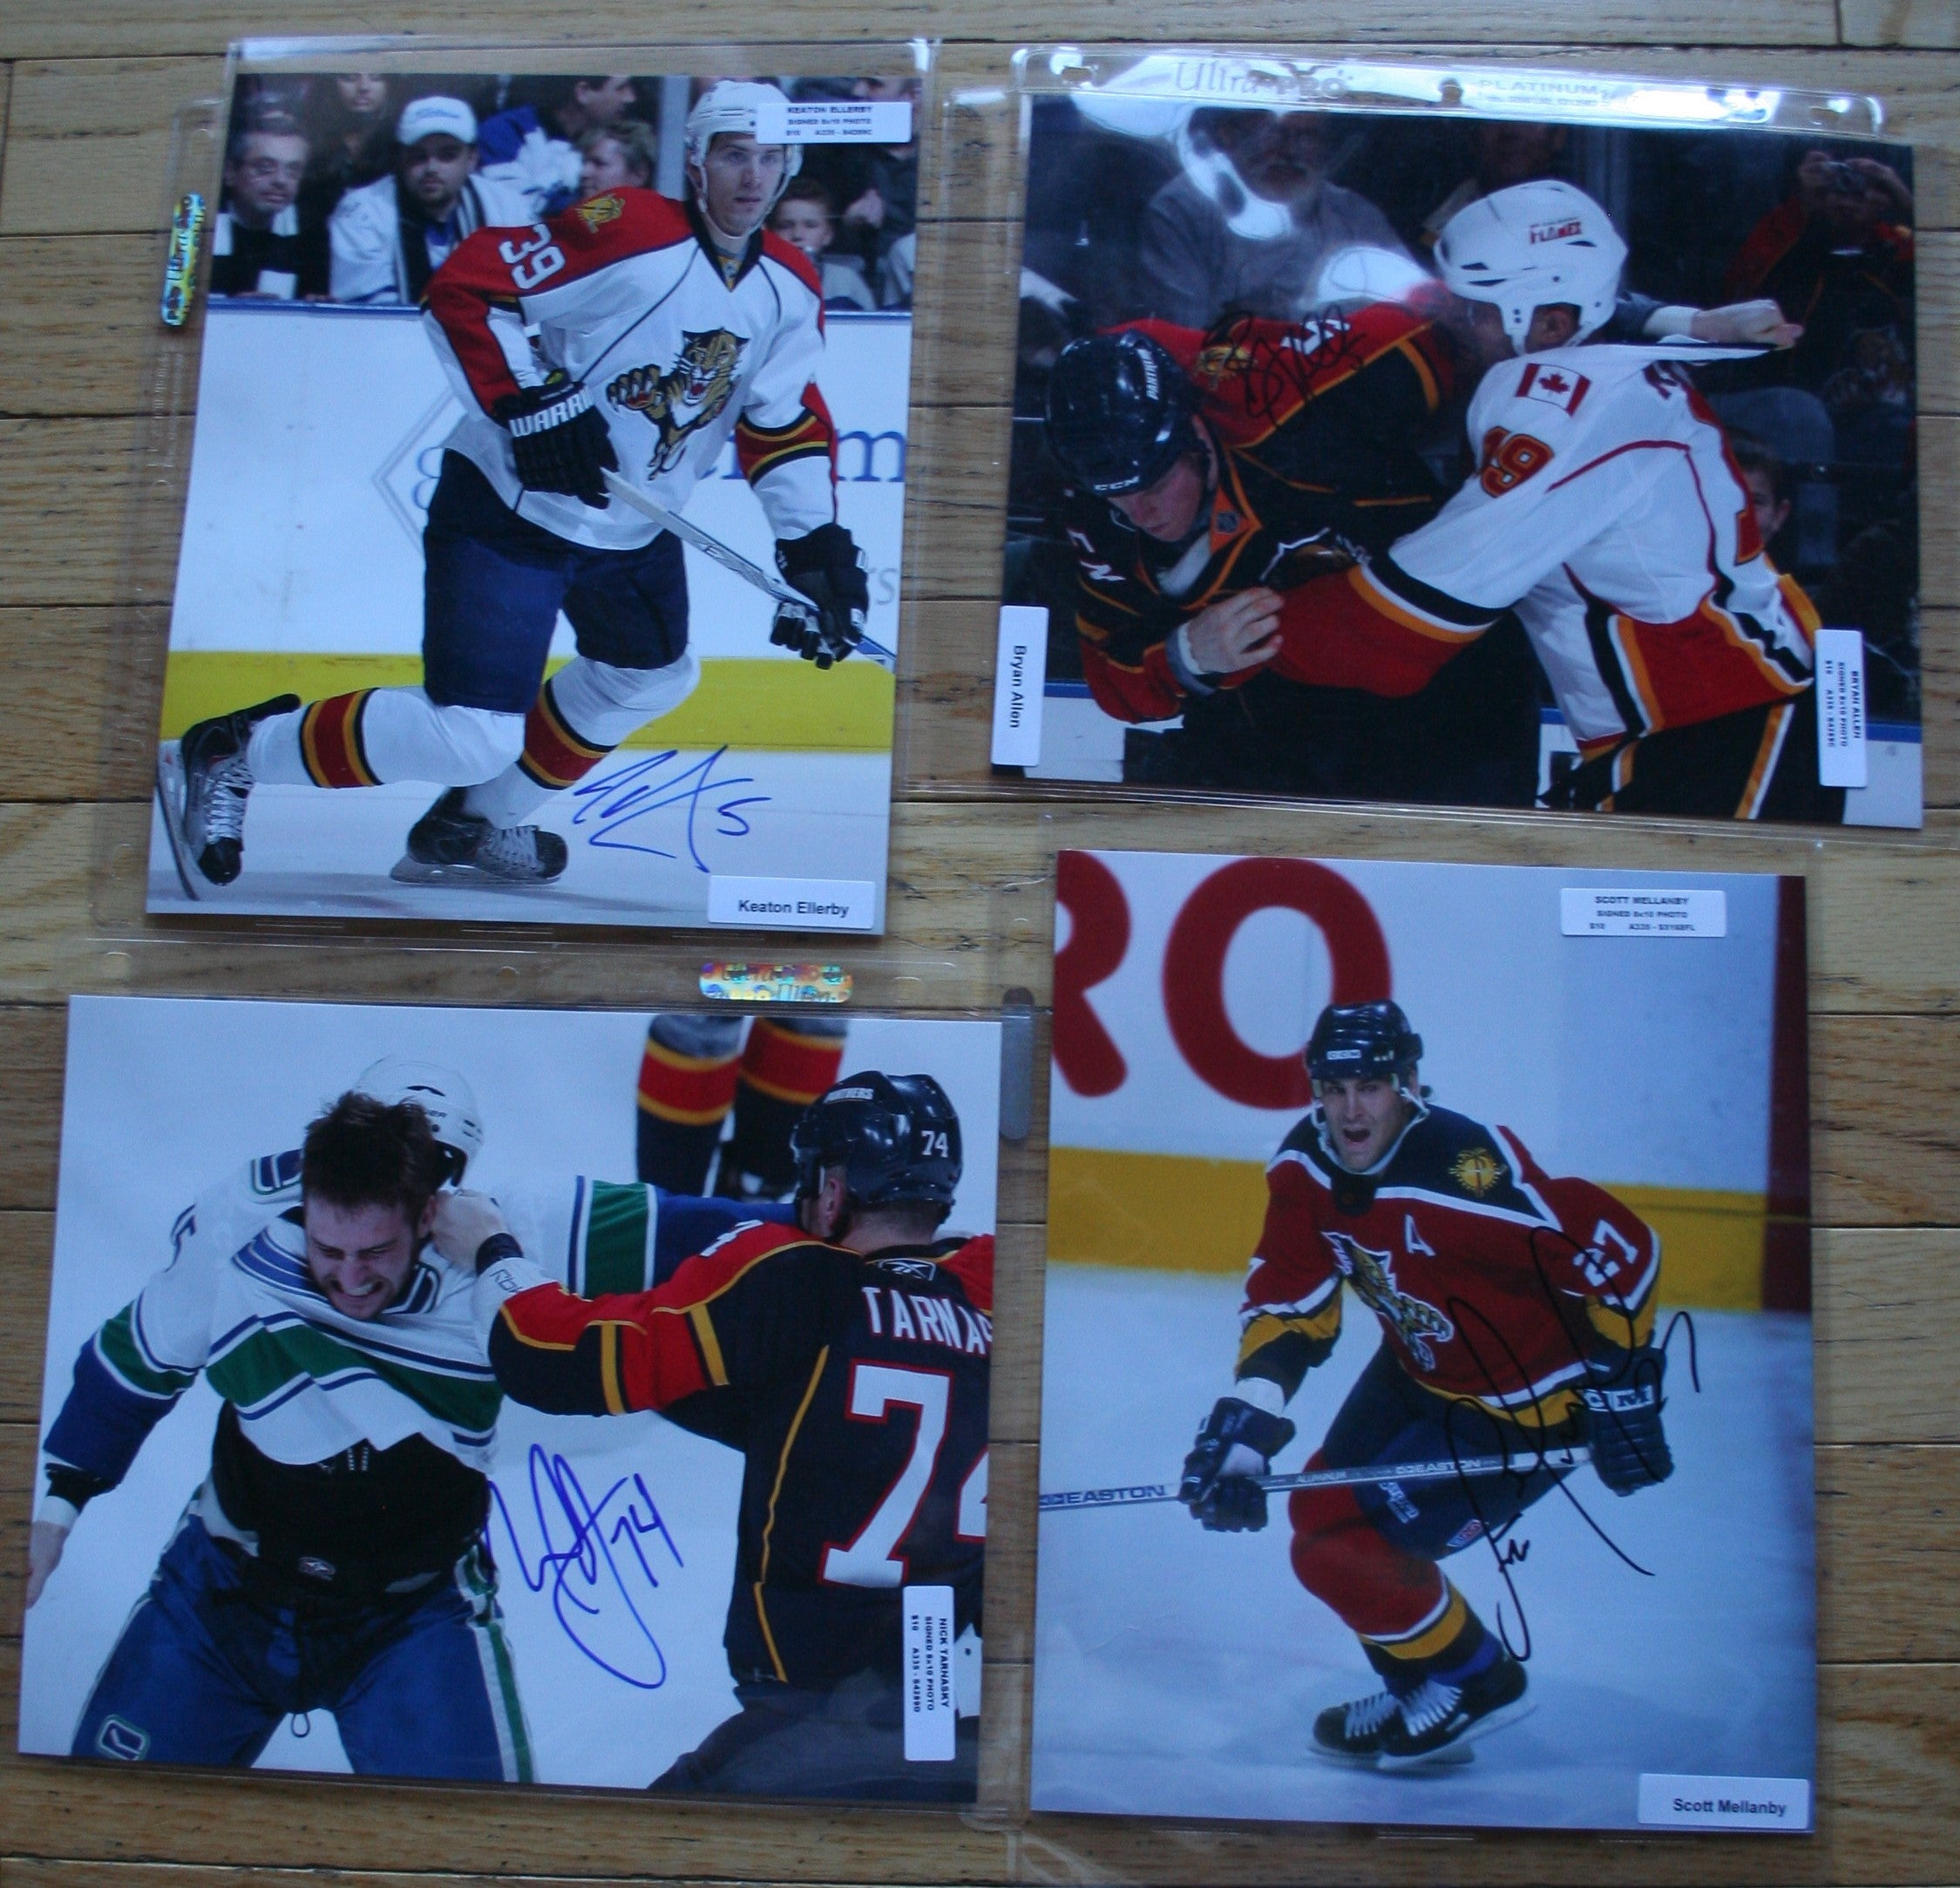 4 Signed Florida NHL 8x10 Photos  Ellerby, Allen, Tarnasky, Mellanby   FREE SHIPPING  c/w COA  NHL Hockey Memorabilia